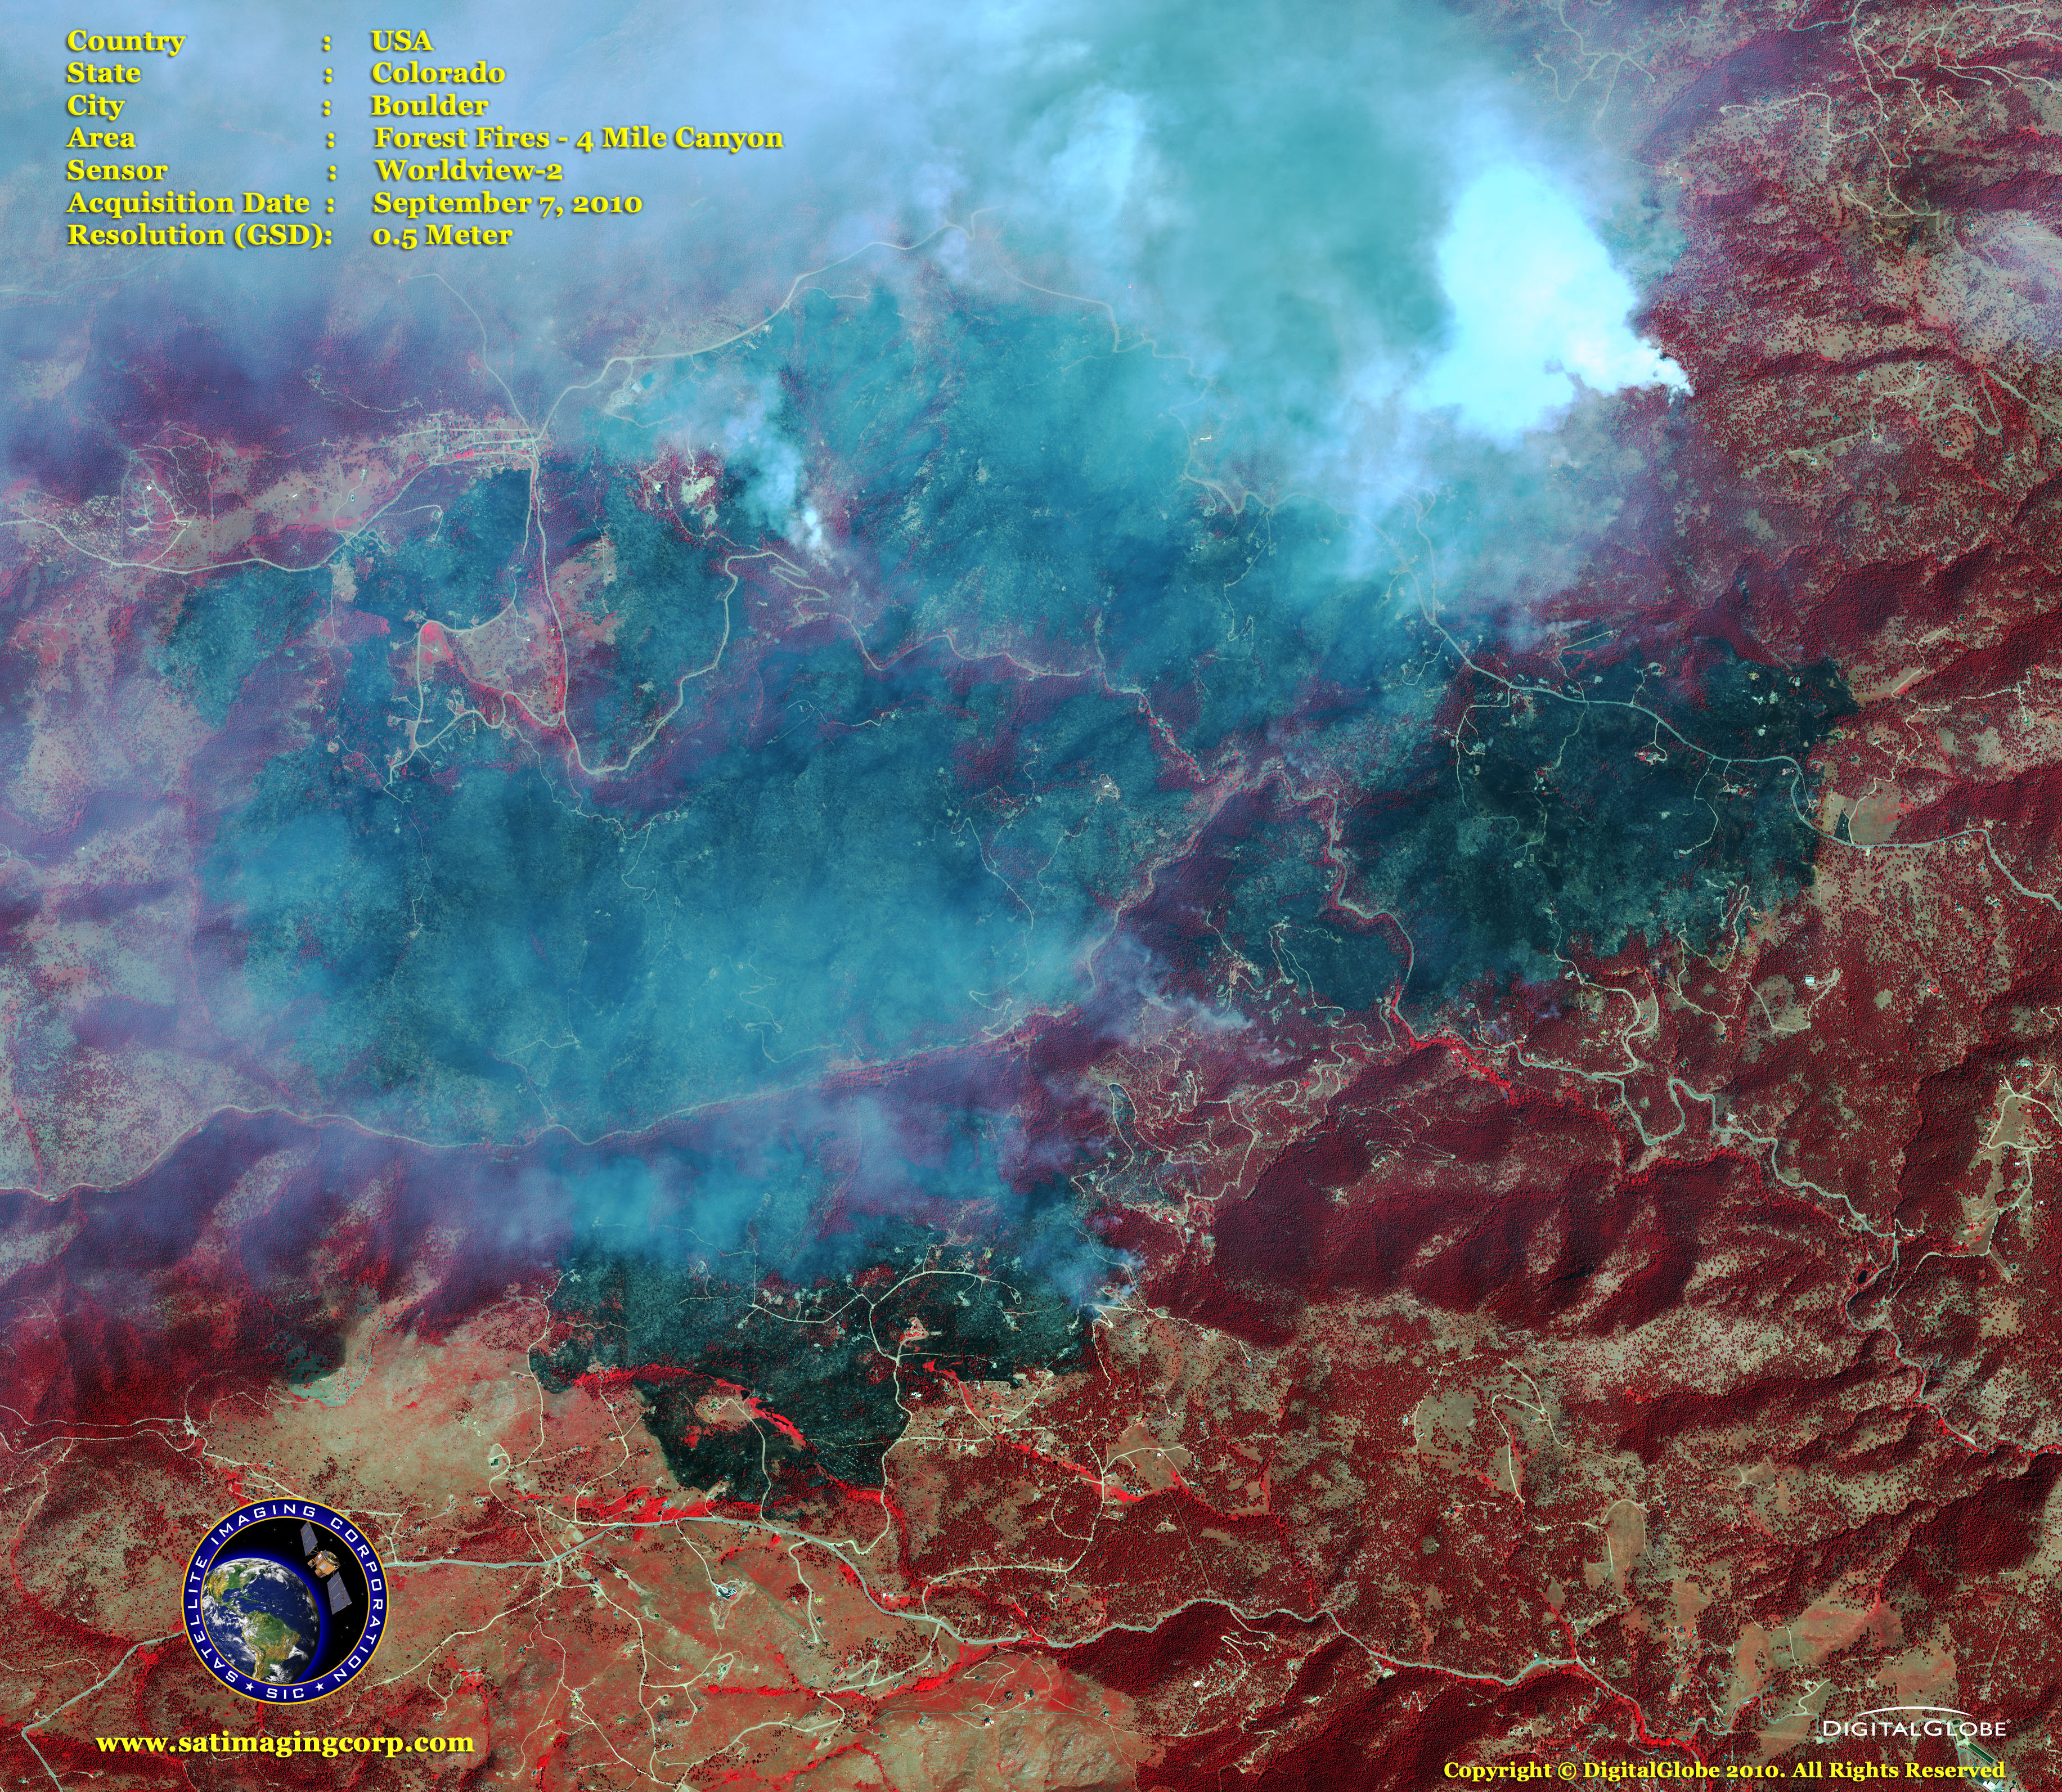 Colorado Corporation Search >> WorldView-2 Satellite Image Fires Boulder | Satellite Imaging Corp